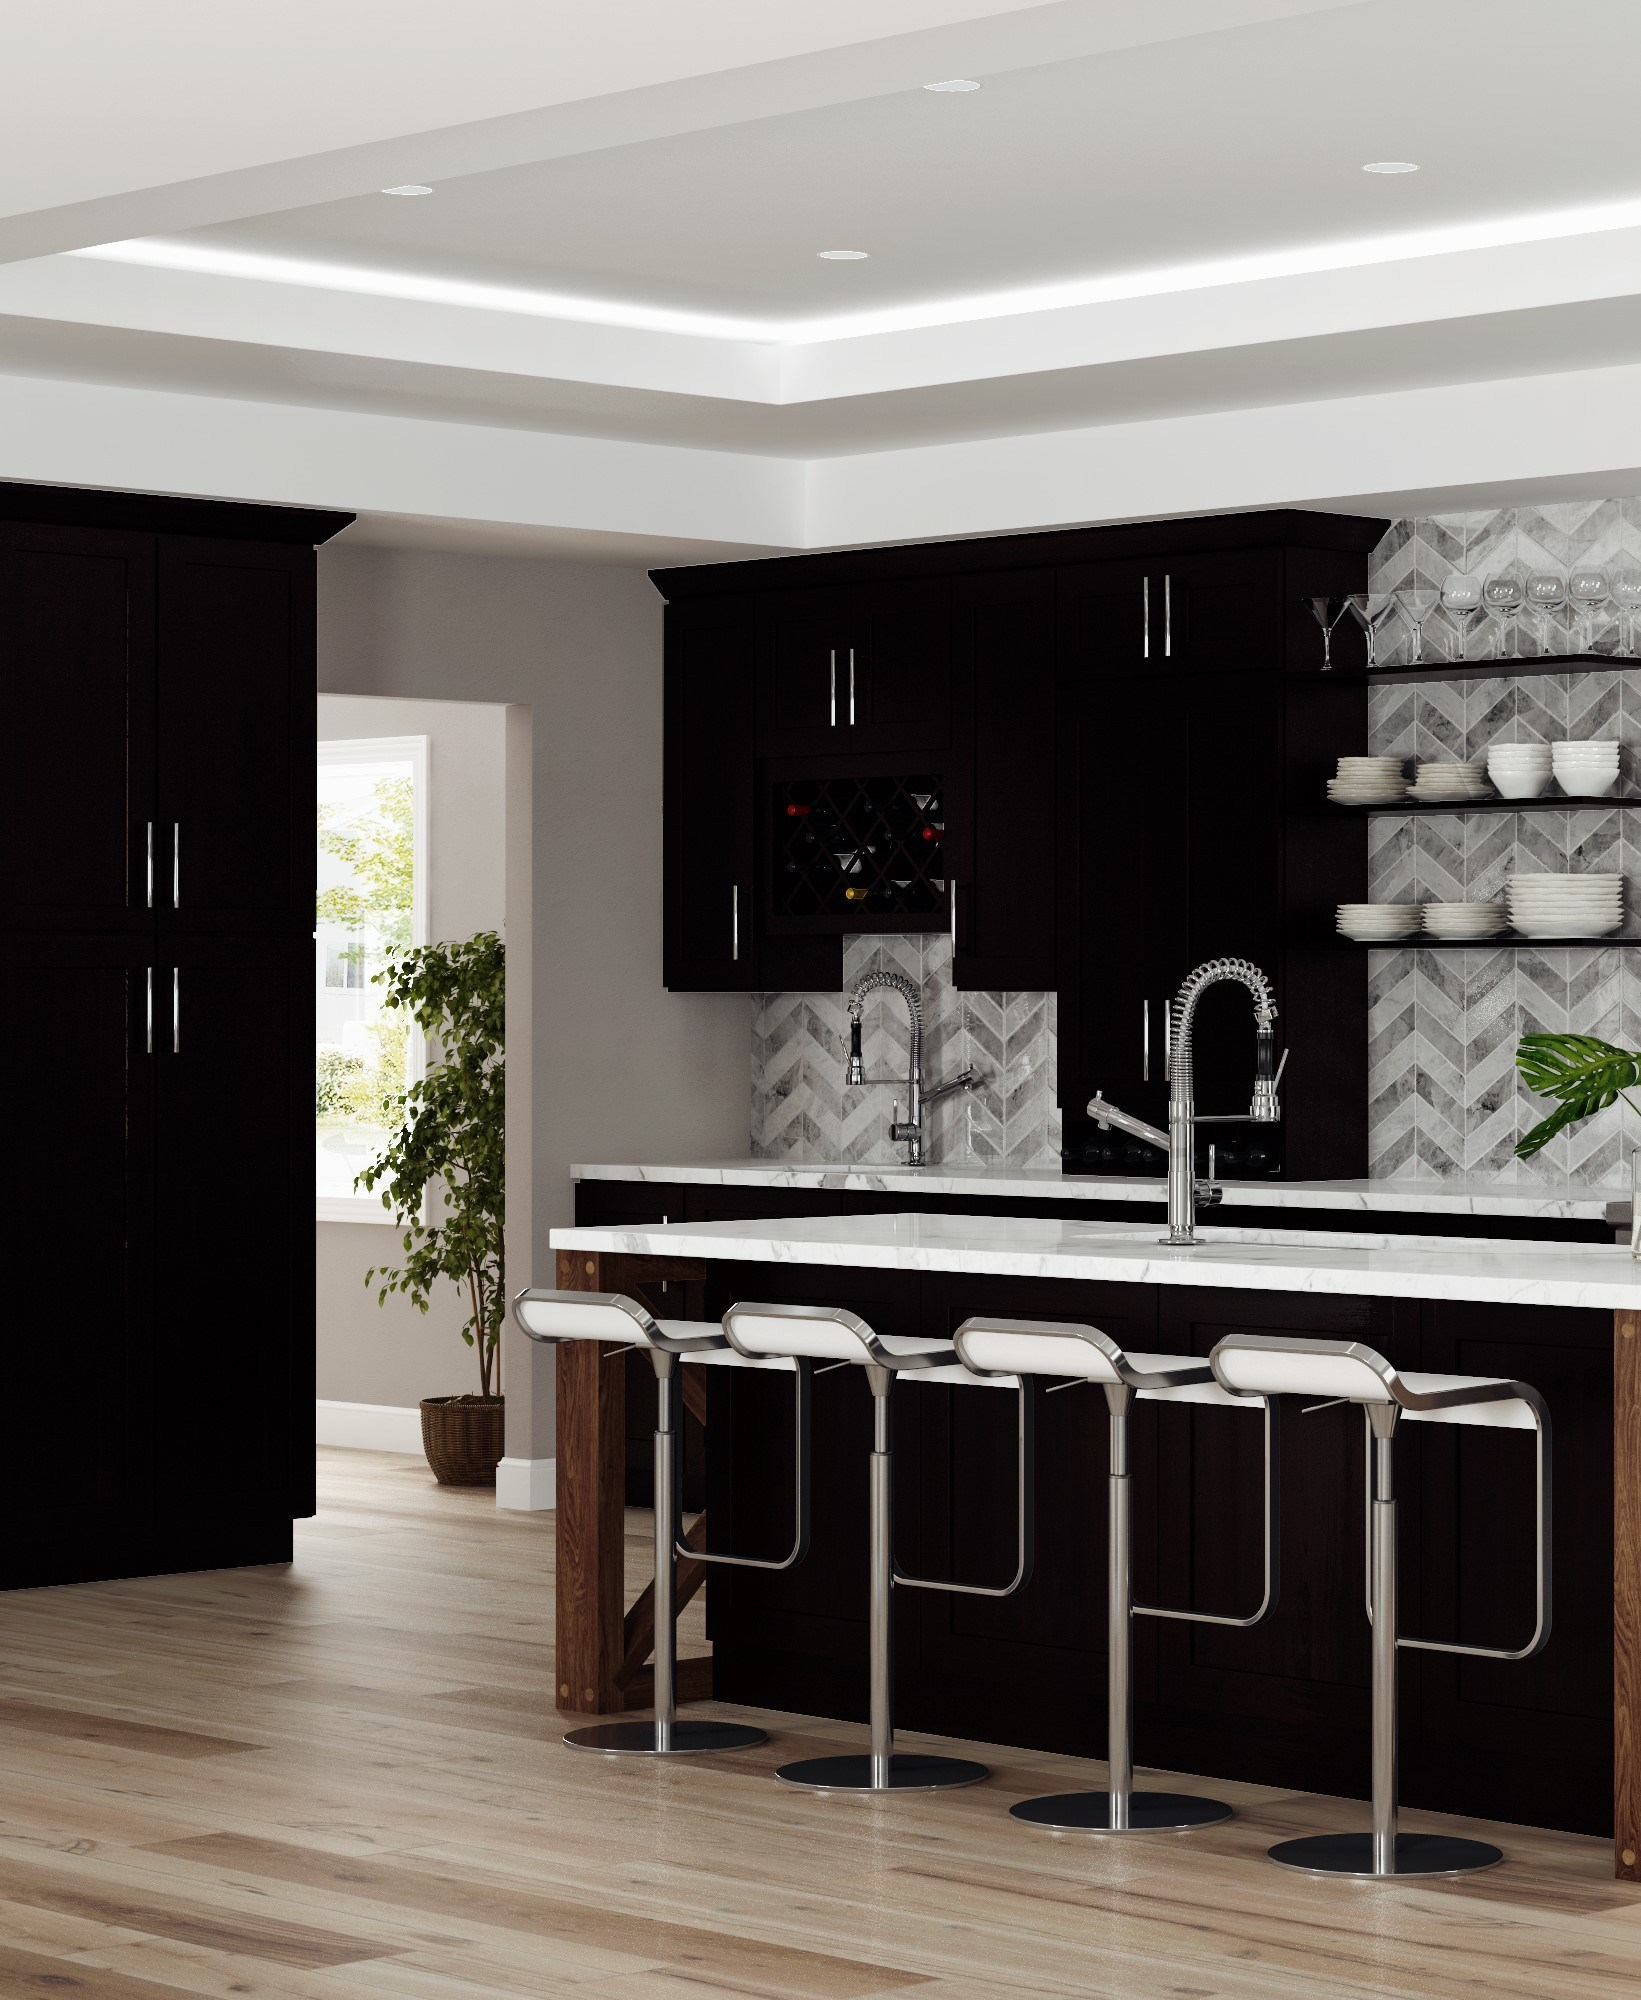 Lily Ann Cabinets